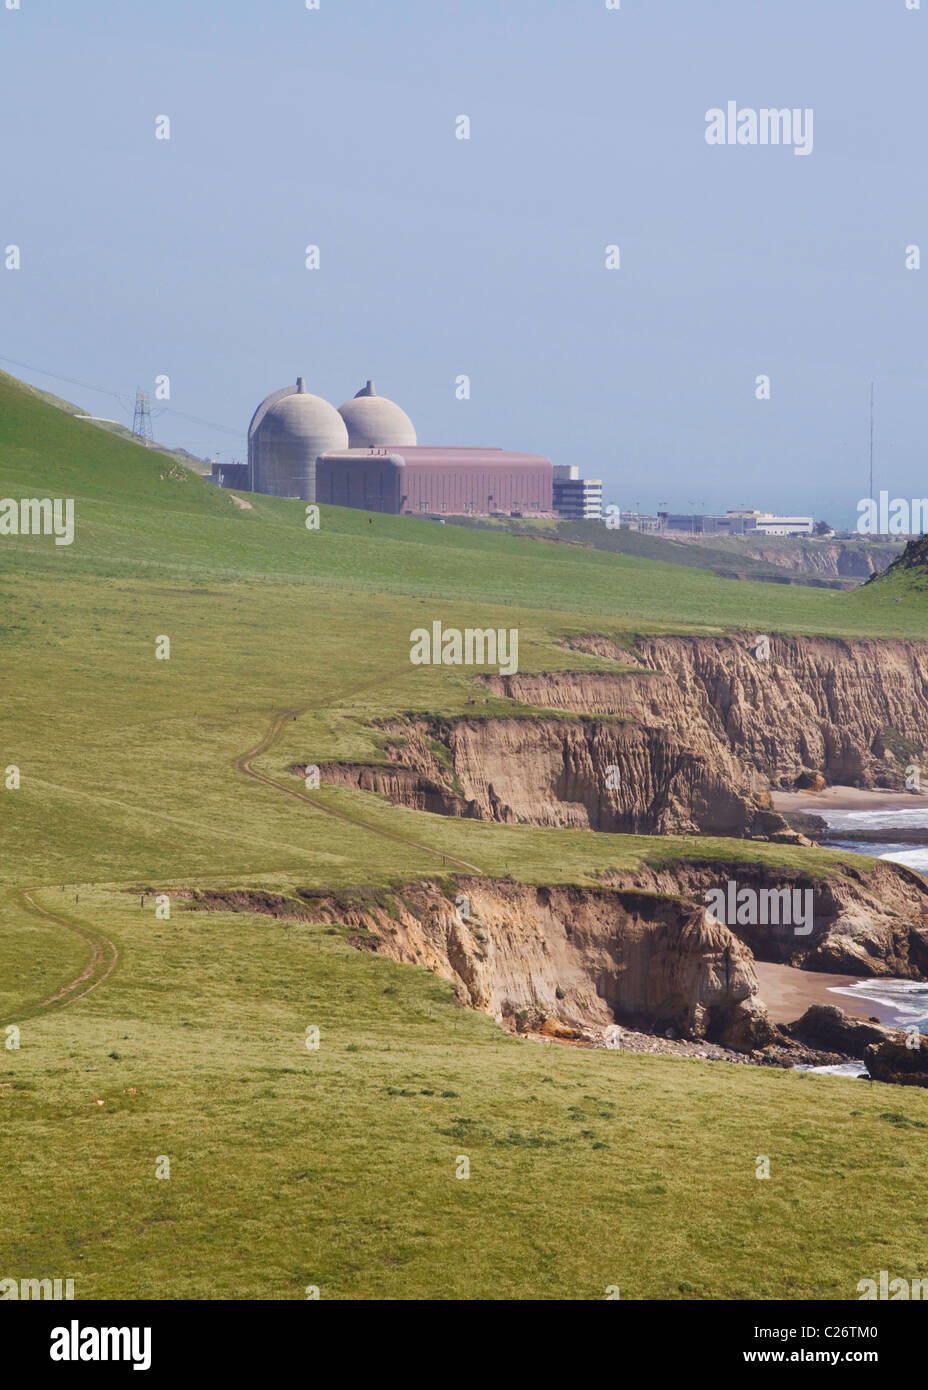 Diablo Canyon Nuclear power station (Diable Canyon Nuclear power plant) - Central California USA - Stock Image